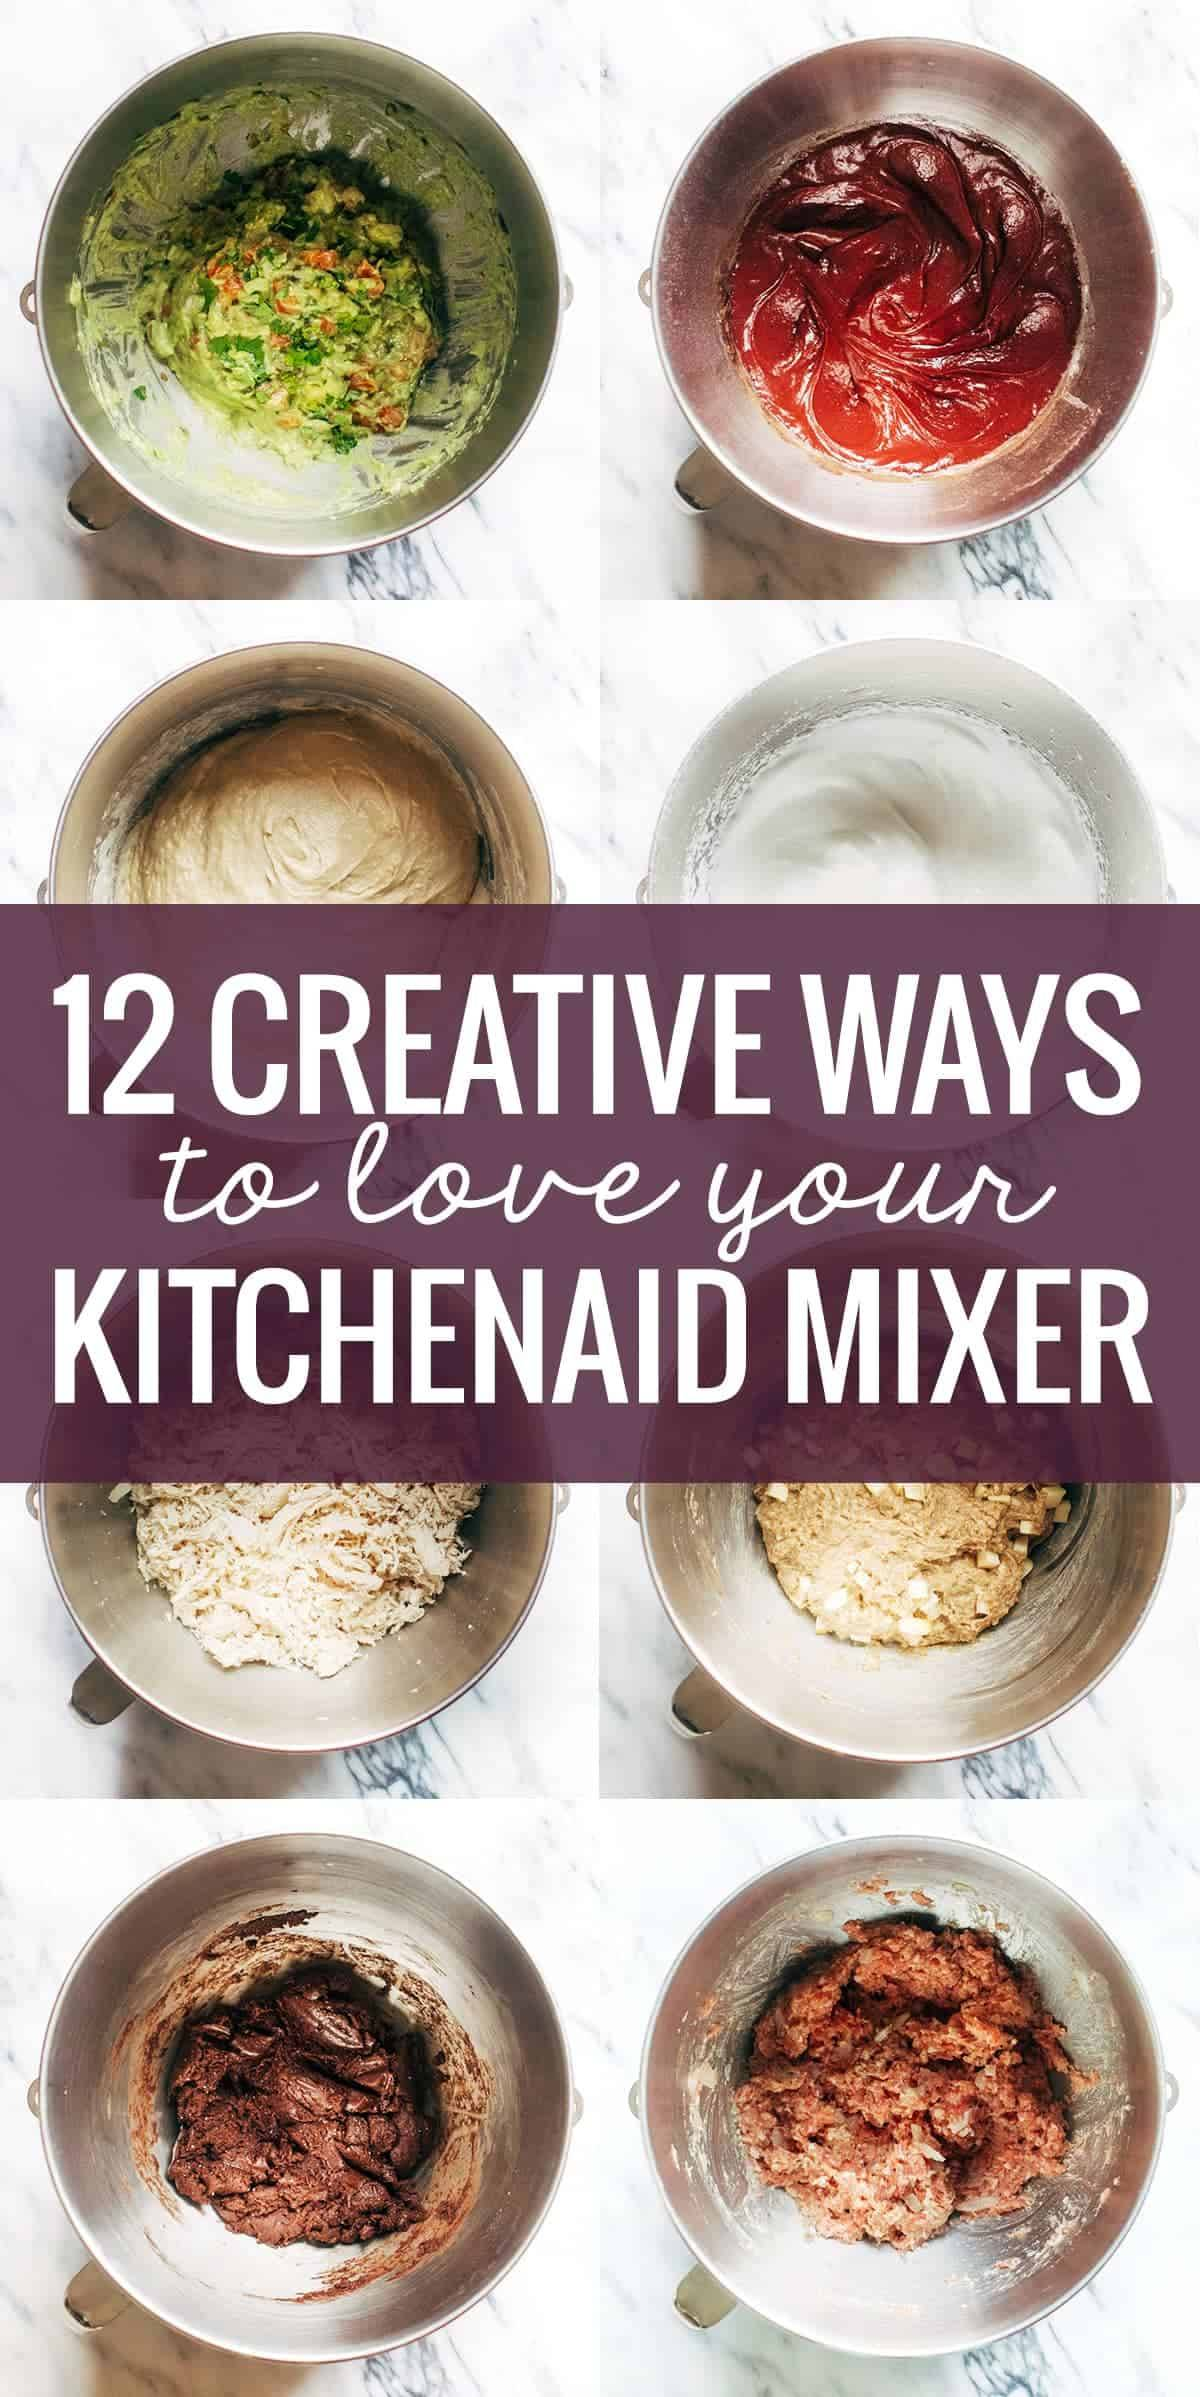 12 Creative Ways to Use A KitchenAid Mixer